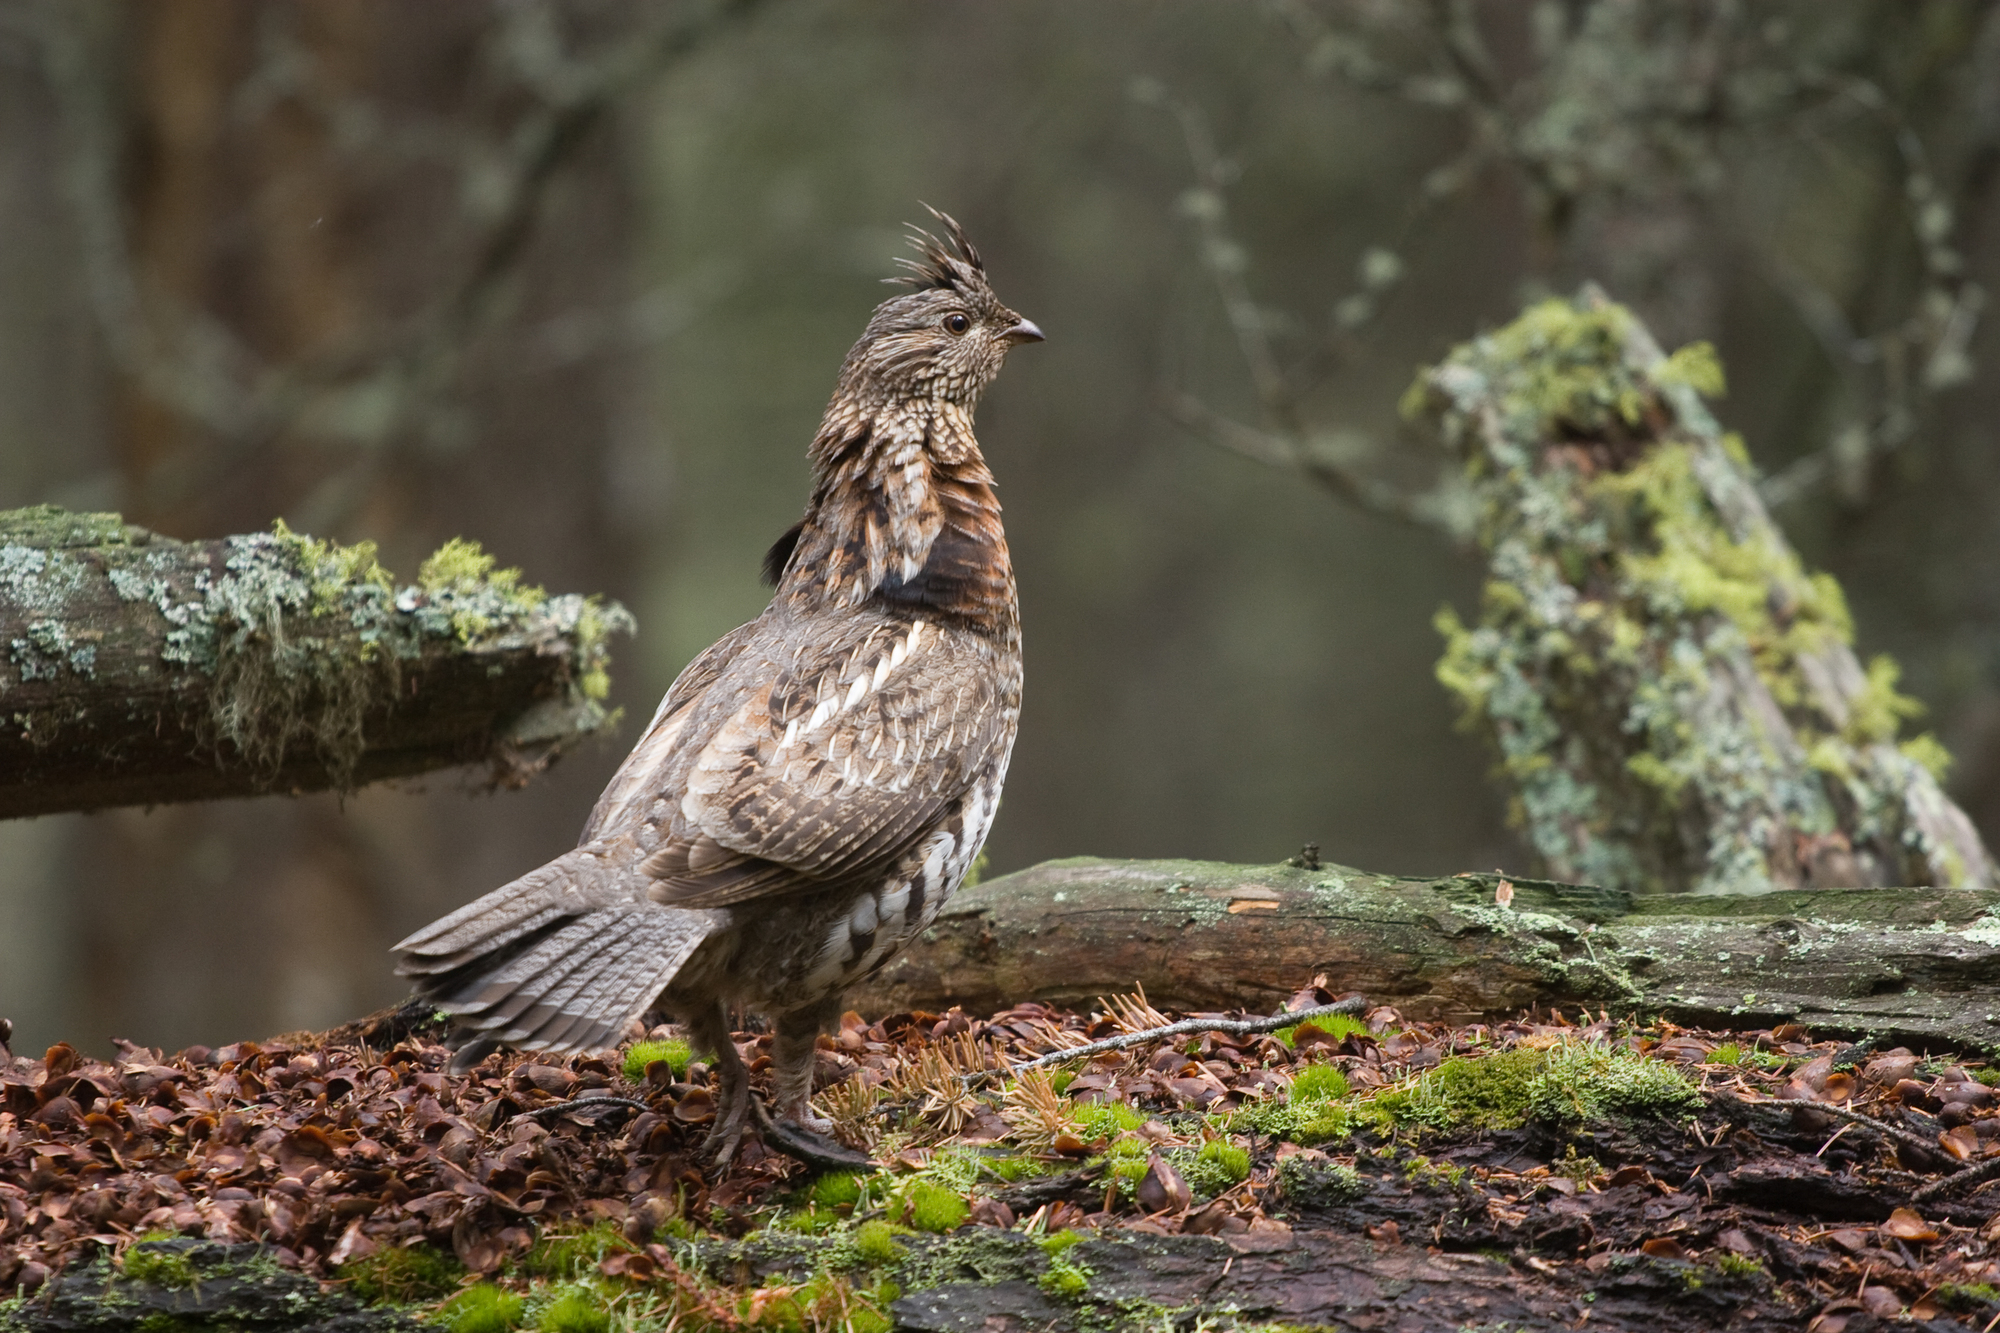 Ruffed grouse standing in woods